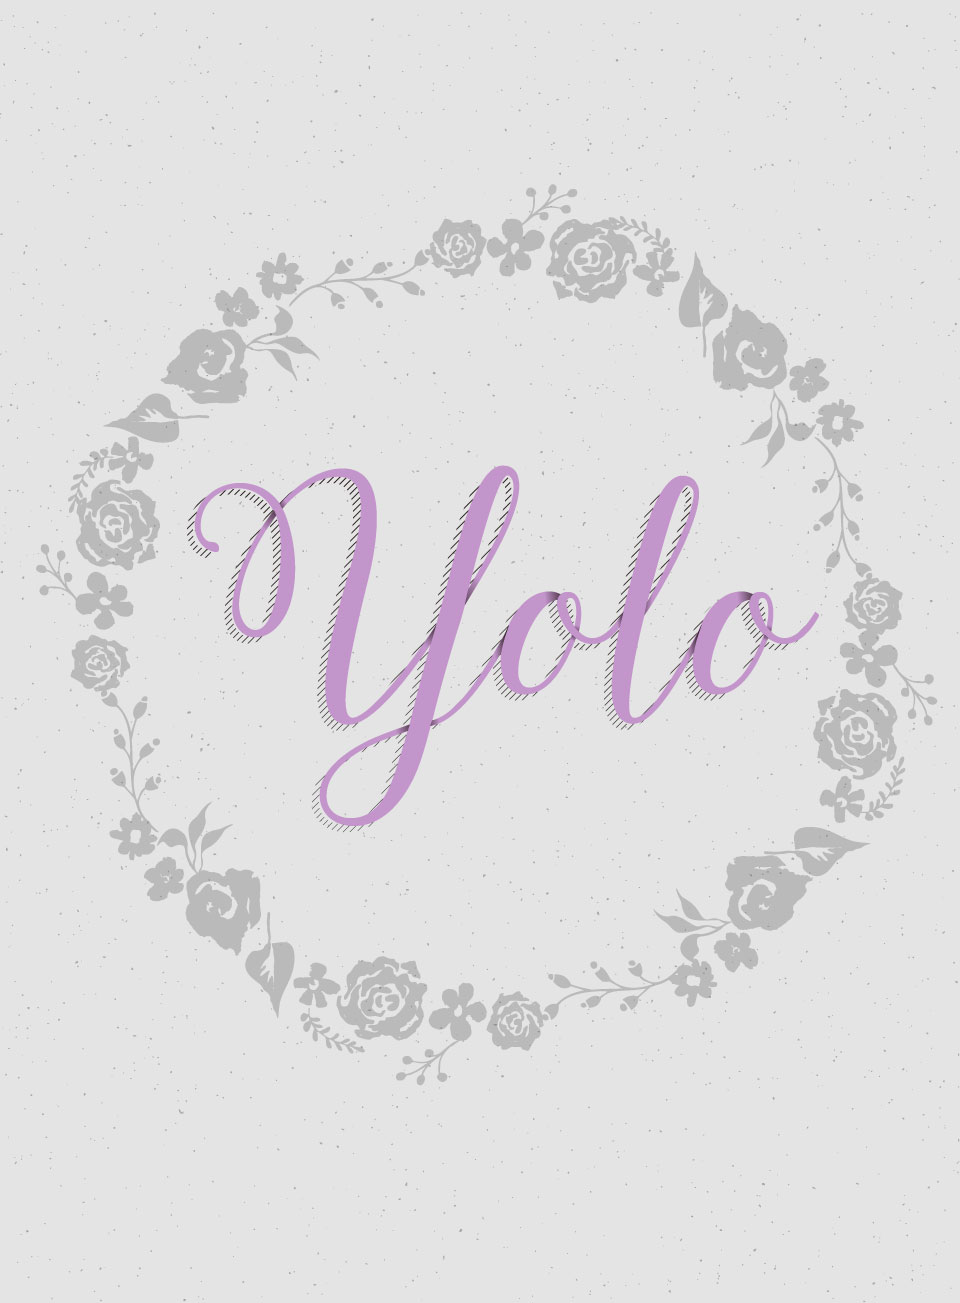 #motivationmondays #yolo blossomlink.me by @0oyukao0